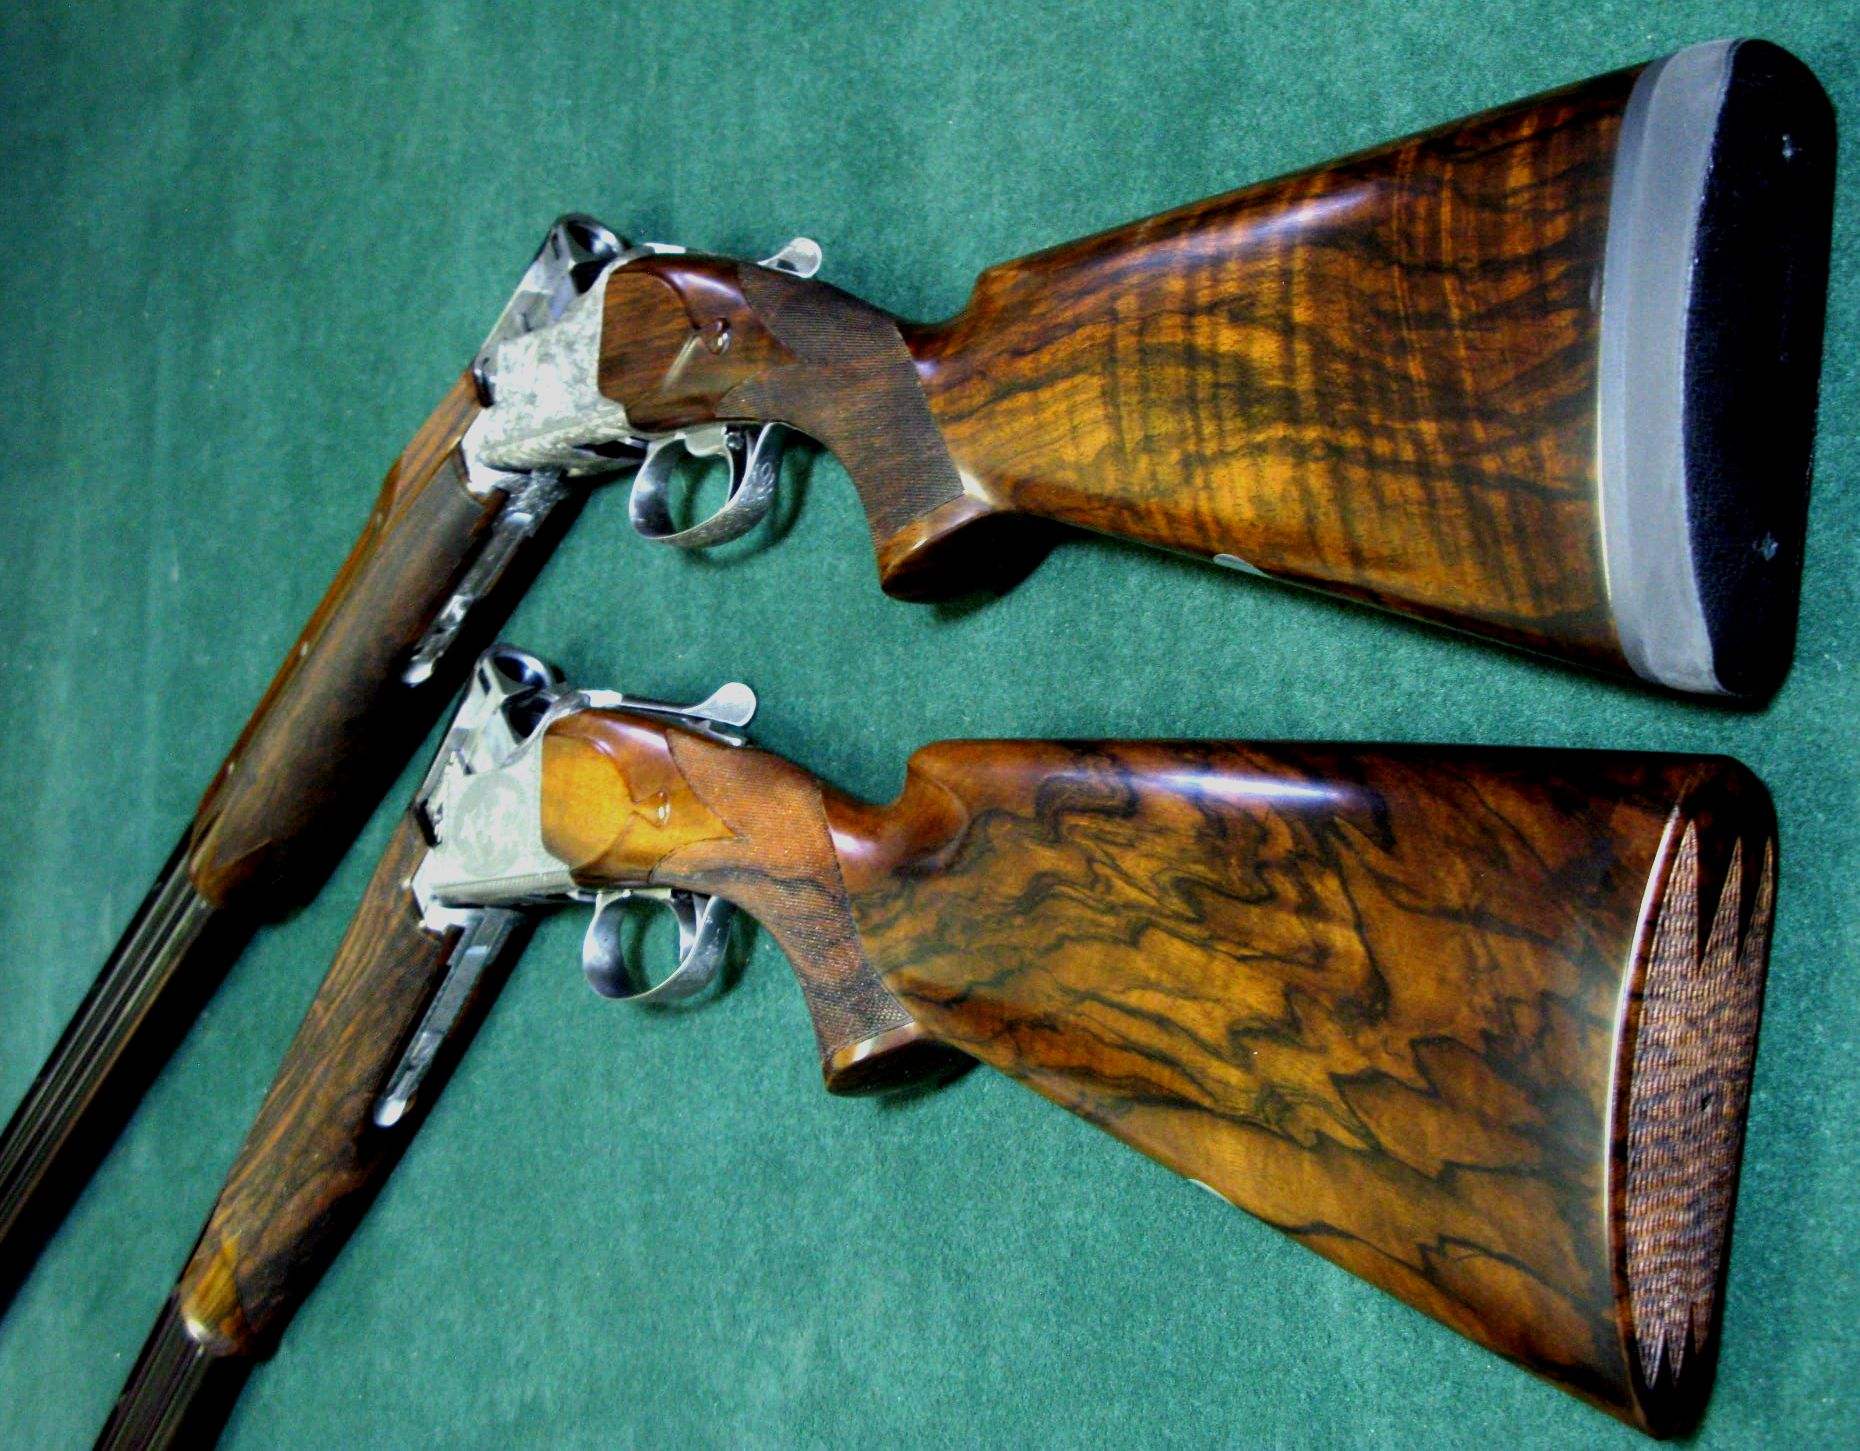 Greenwood Gunsmiths in the West Midlands